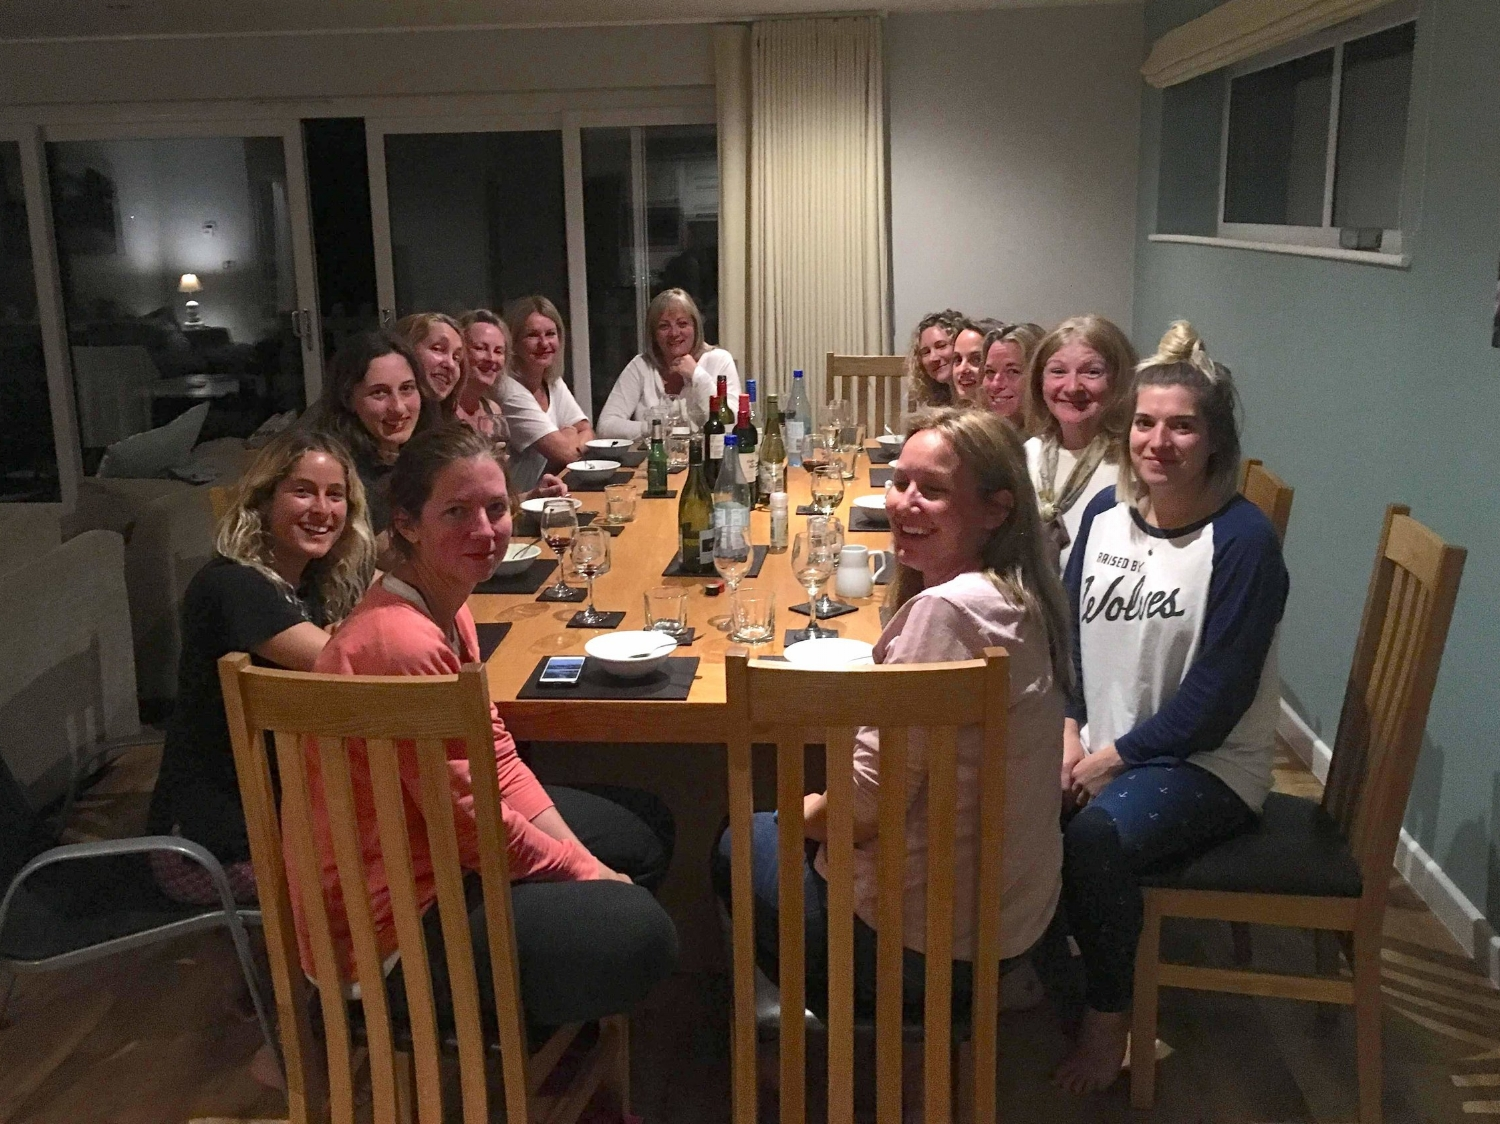 Dinner - We eat out as a group with the hosts and surf instructors at lovely local Cornish pubs & restaurants in Perranporth all walking distance from our accommodation.